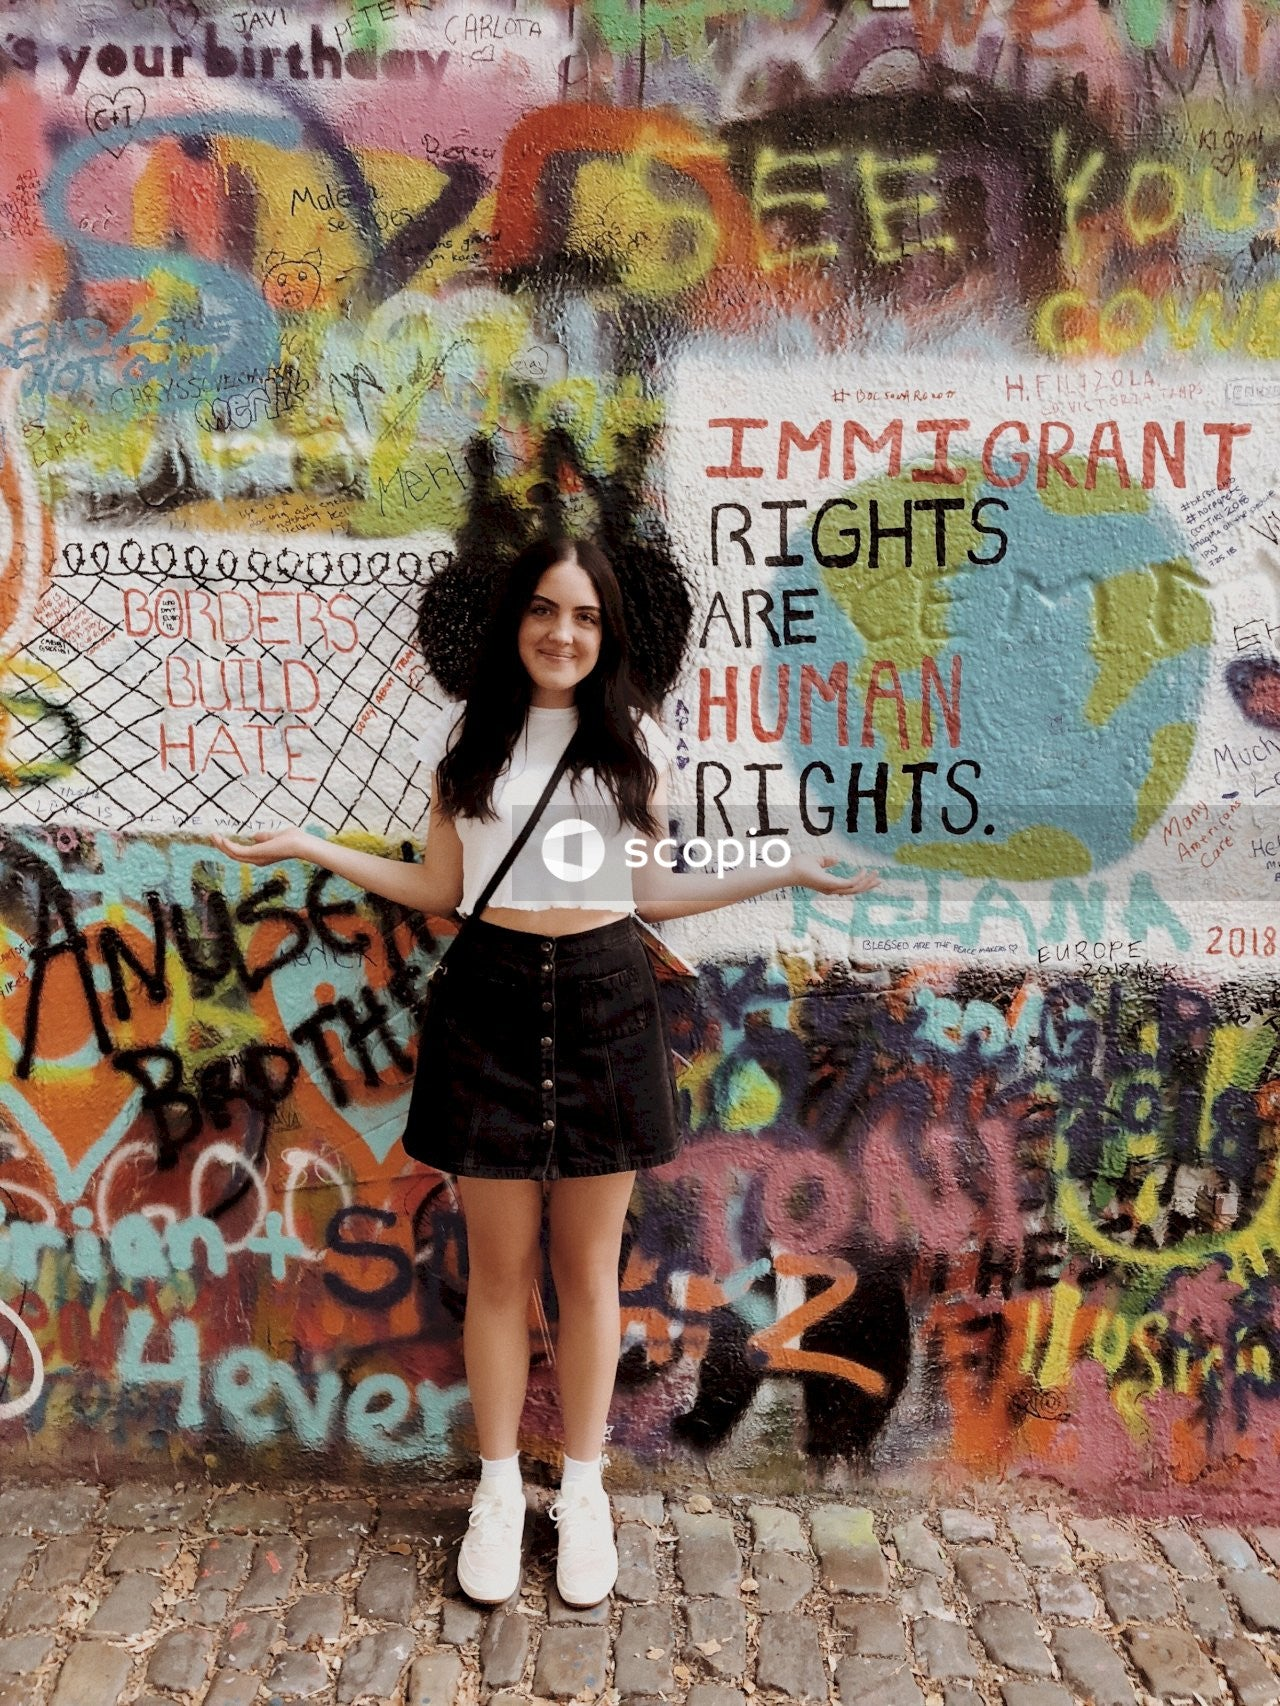 Woman in black mini skirt standing near graffiti wall